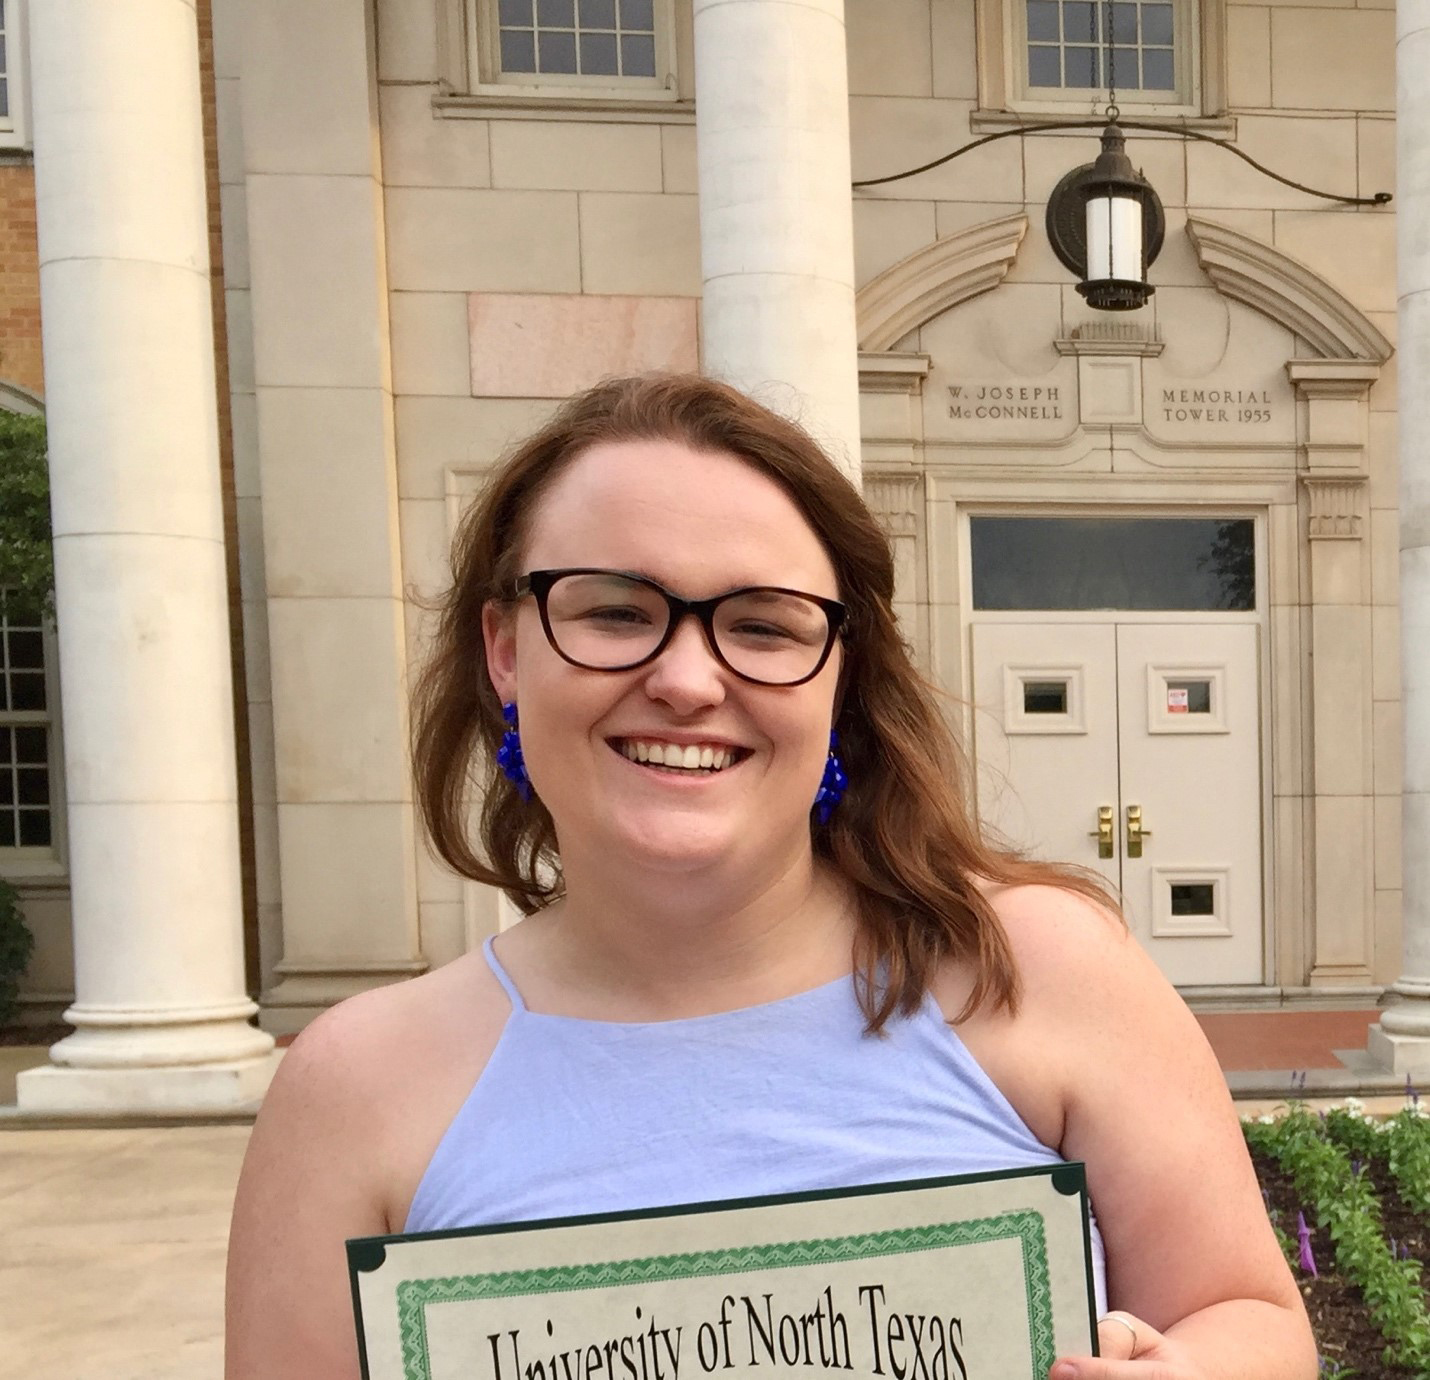 Hannah Horick in front of Hurley Administration Building